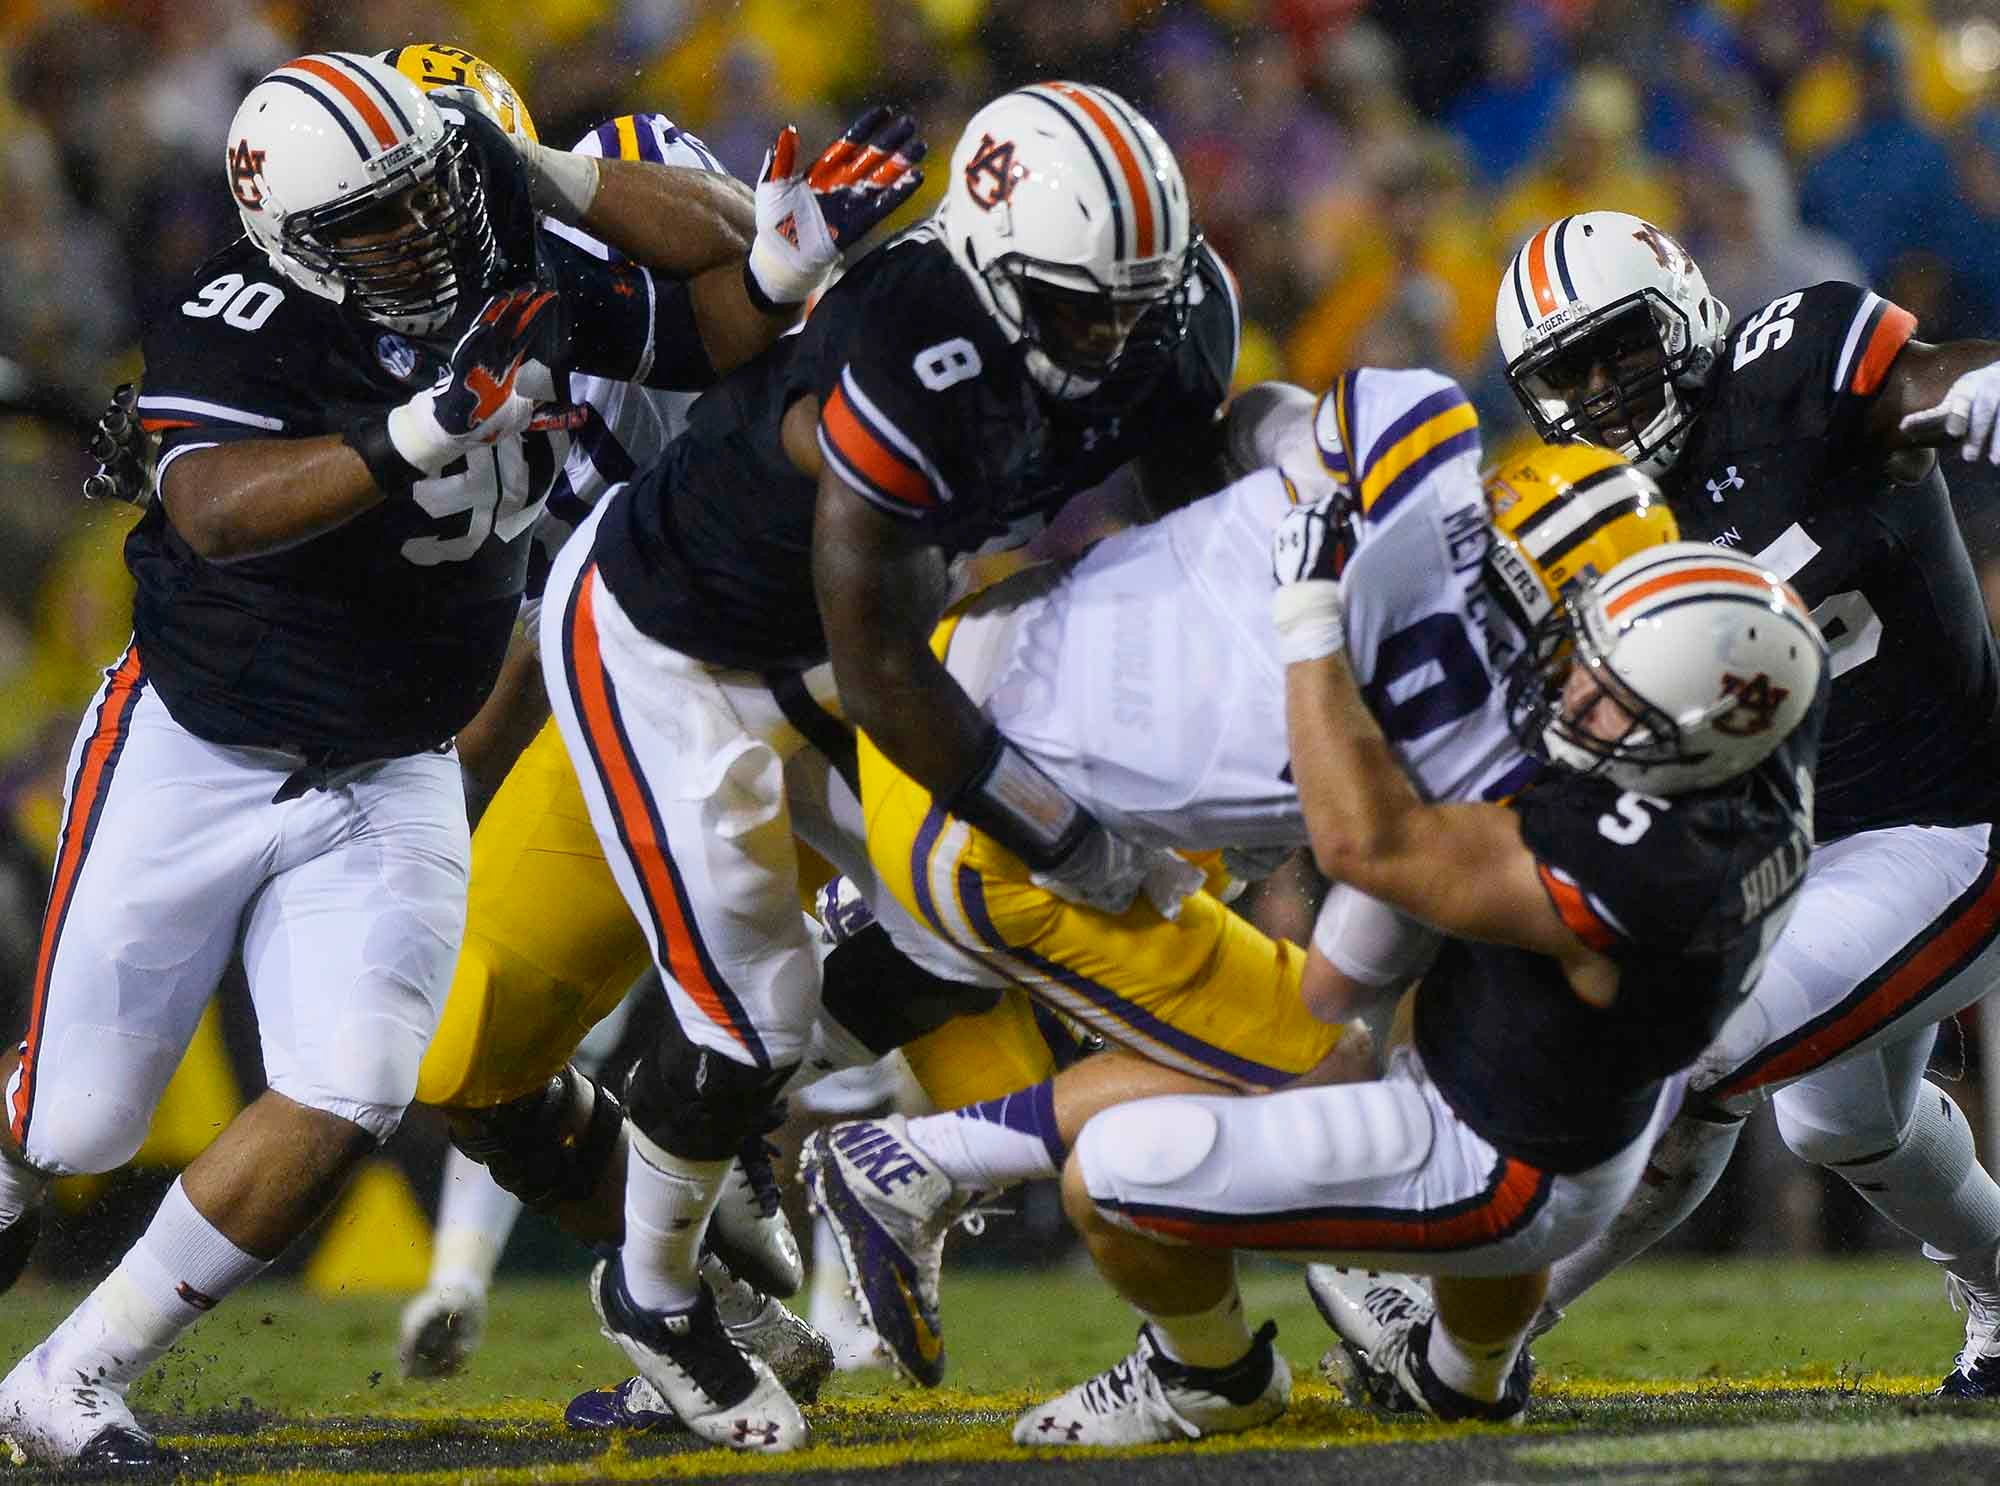 LSU quarterback Zach Mettenberger gets sacked by the Auburn defense. Mettenberger has gotten off to a good start this season and plays Georgia this week. (Source: Todd van Emst/Auburn University)